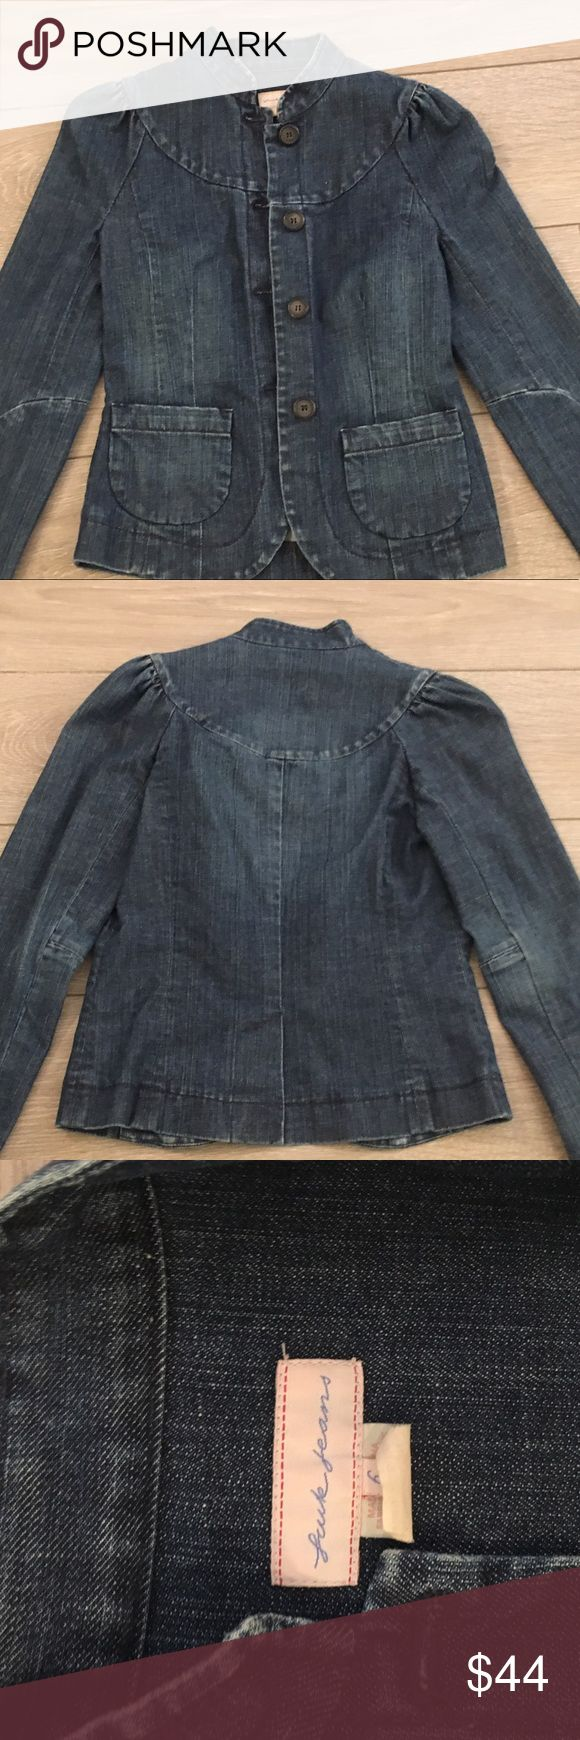 Fcuk jean jacket size 6 Great condition FCUK french connection jean jacket size 6 (small) French Connection Jackets & Coats Jean Jackets